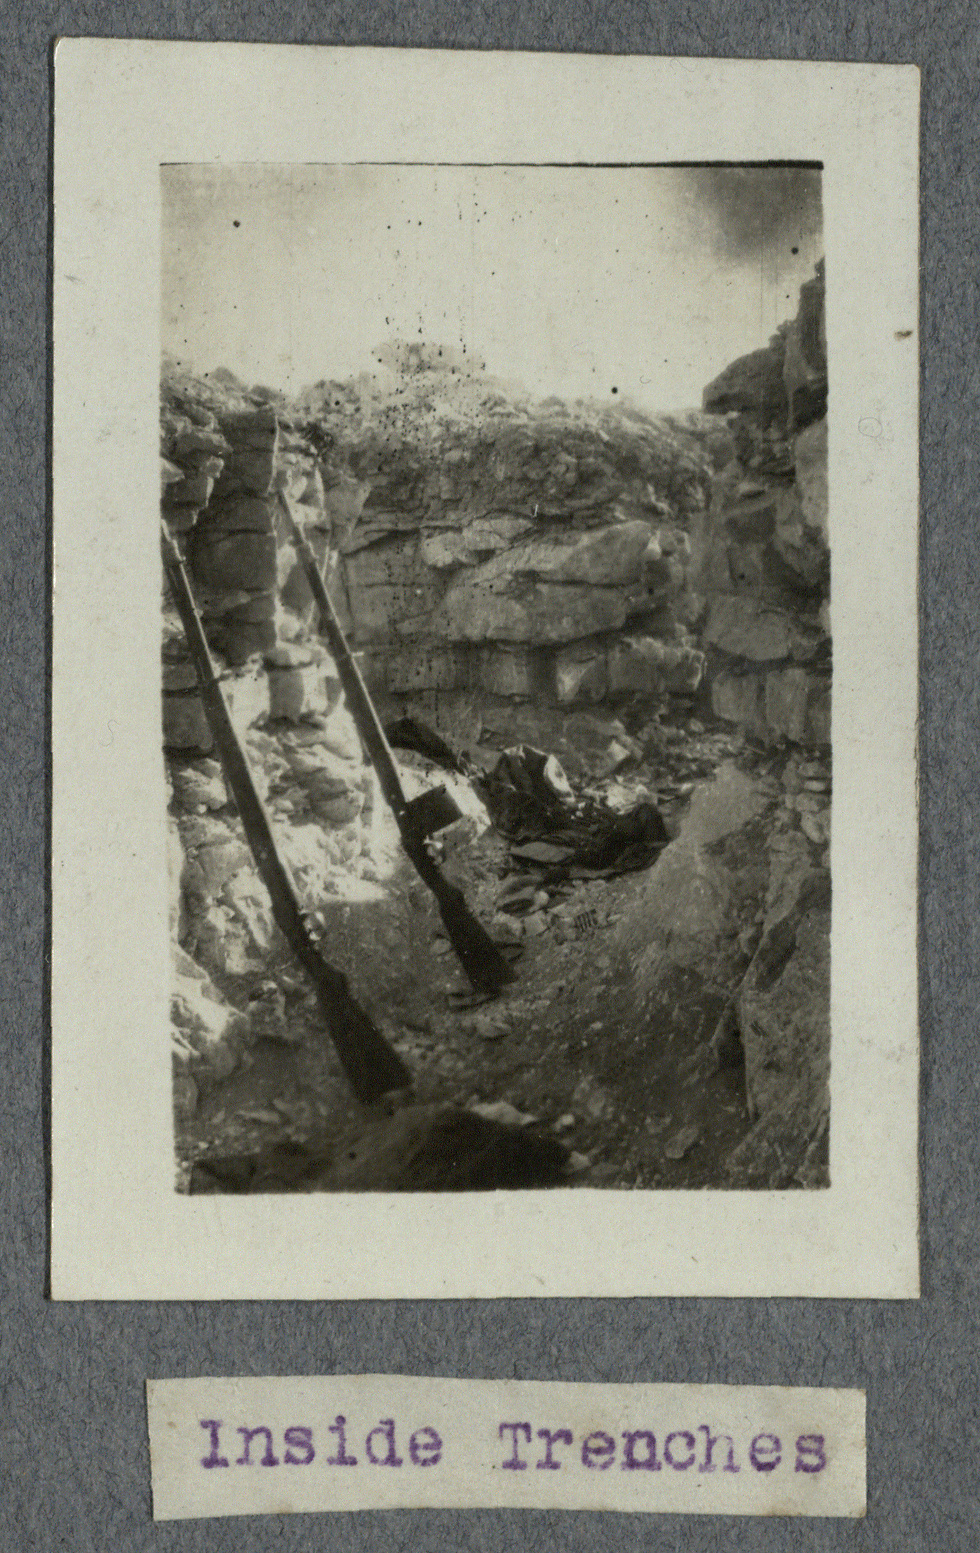 A view inside soldiers' trenches (Photo: National Library of Israel)